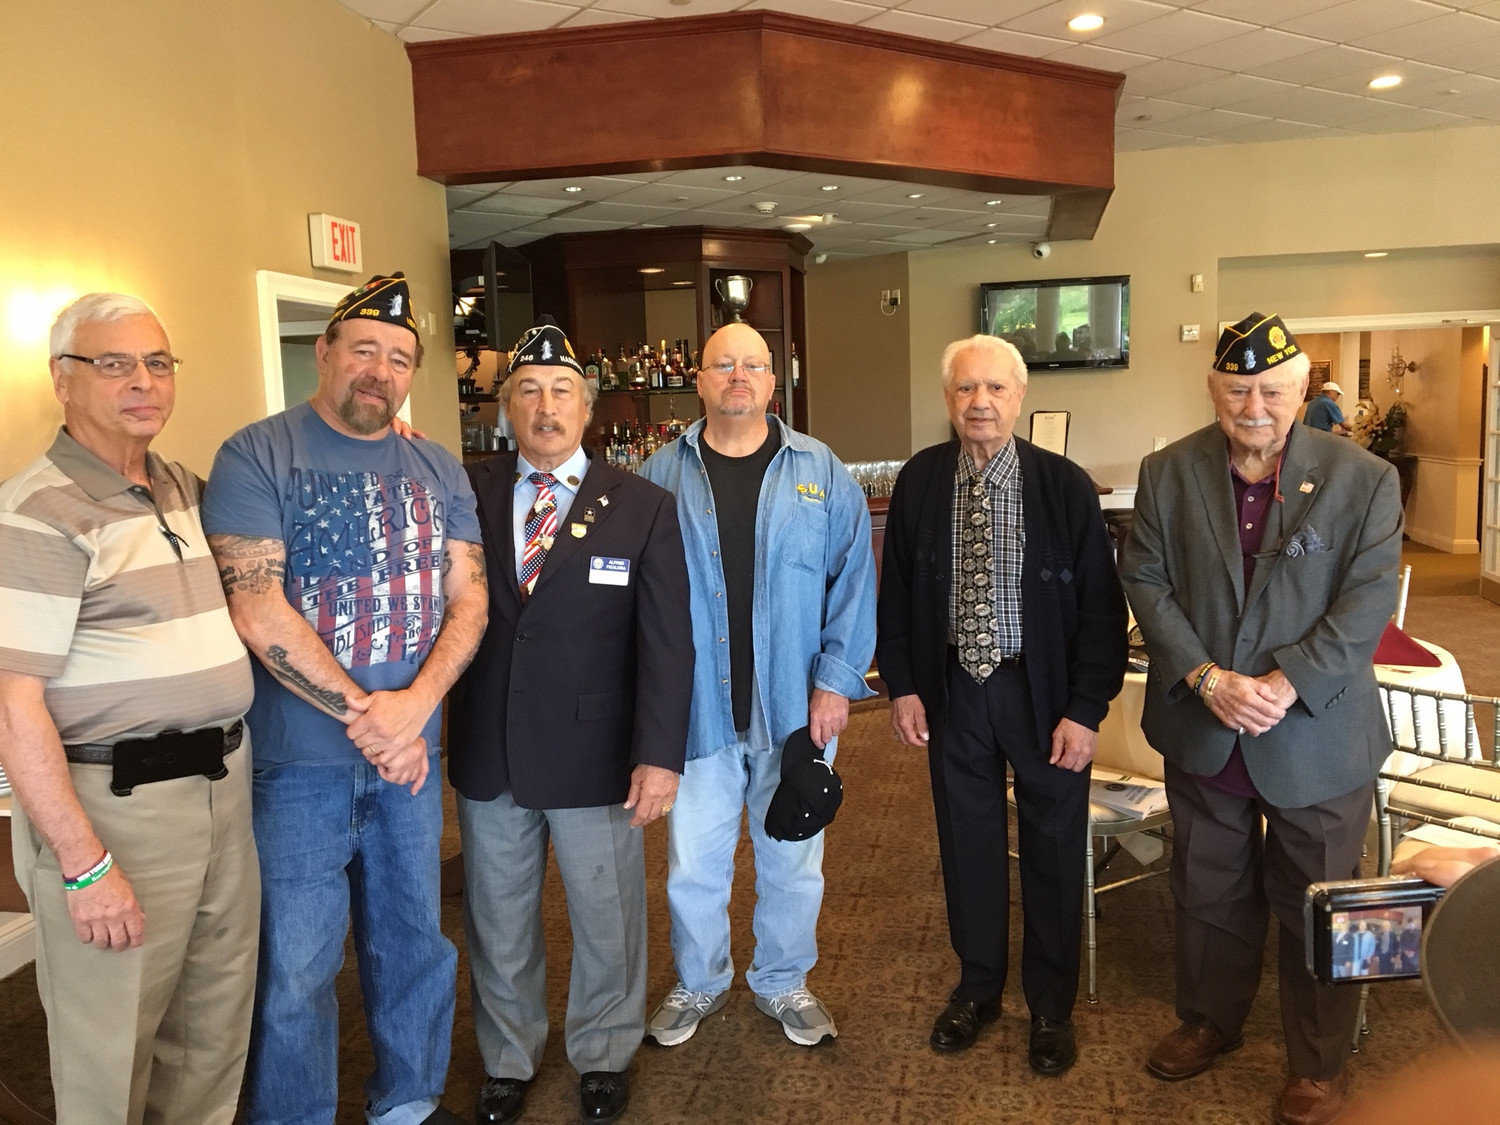 Harry Beltrani, second from right, most recently was the service officer for Post 339. From left were Post Adjutant Brig. Gen. (ret) Pat Alesia, Post Commander Syd Mandelbaum, installing Officer Nassau County Adjutant Al Ficalora, Vice Commander Al Landi and Sergeant-At-Arms Domenic Crici.